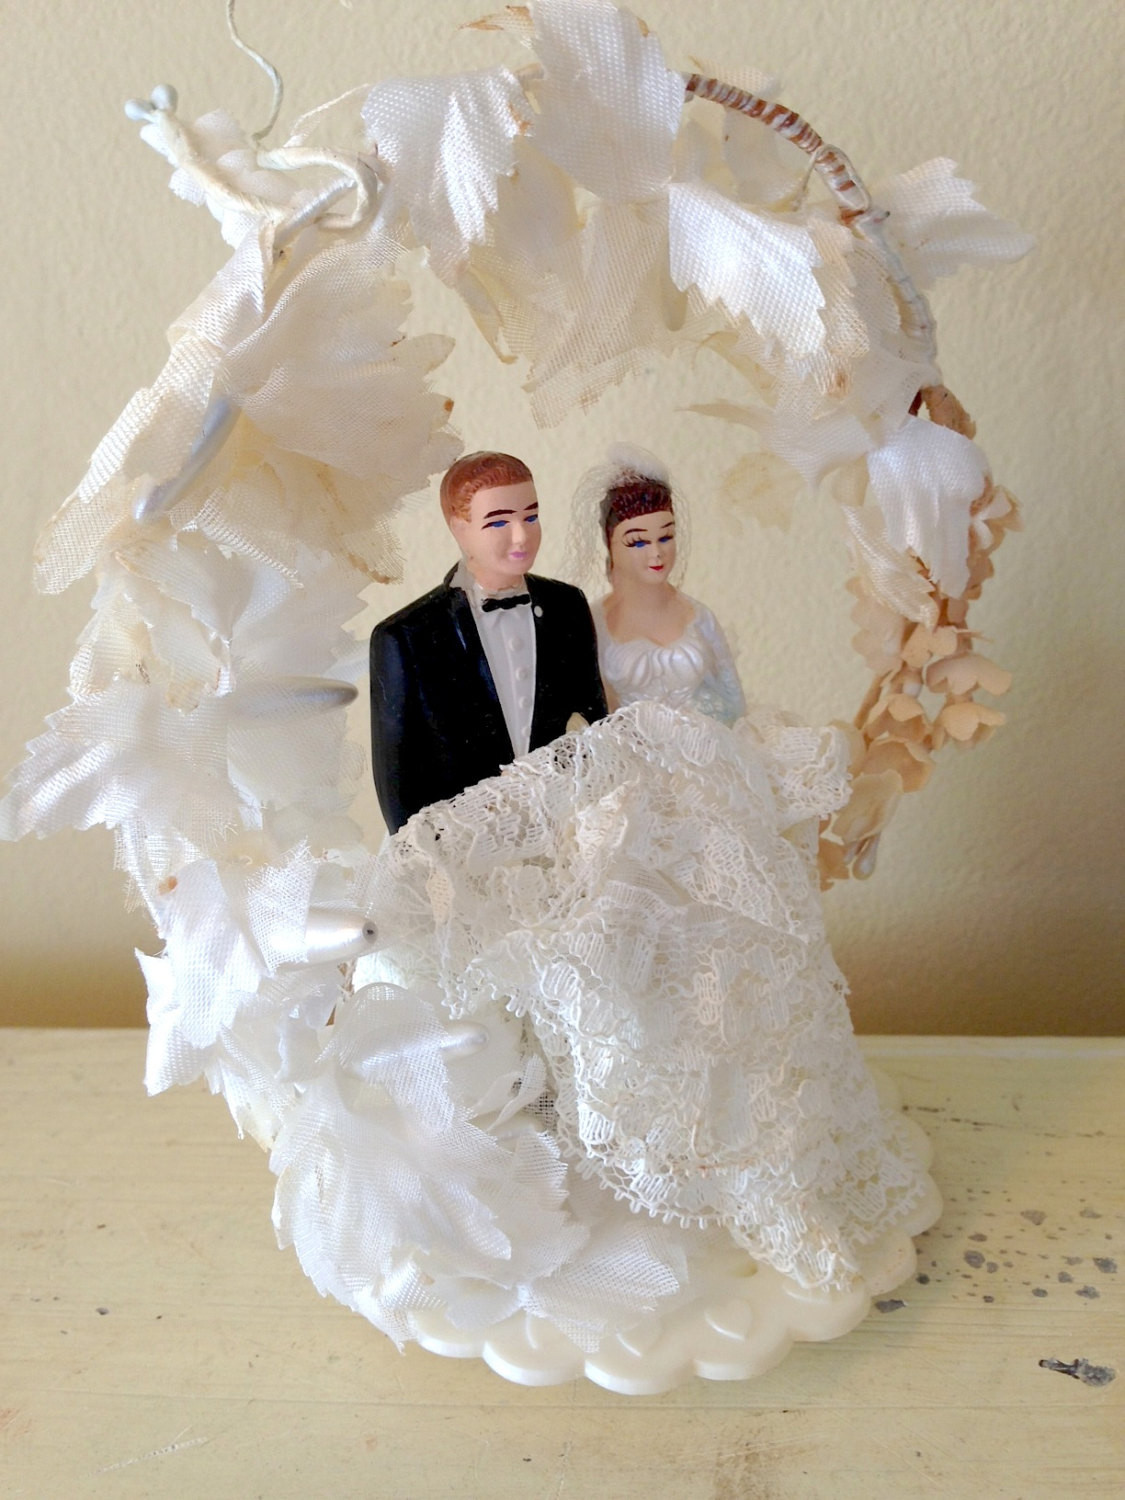 Bride And Groom Toppers For Wedding Cakes  Vintage Cake Topper Wedding Cake Topper Bride and Groom